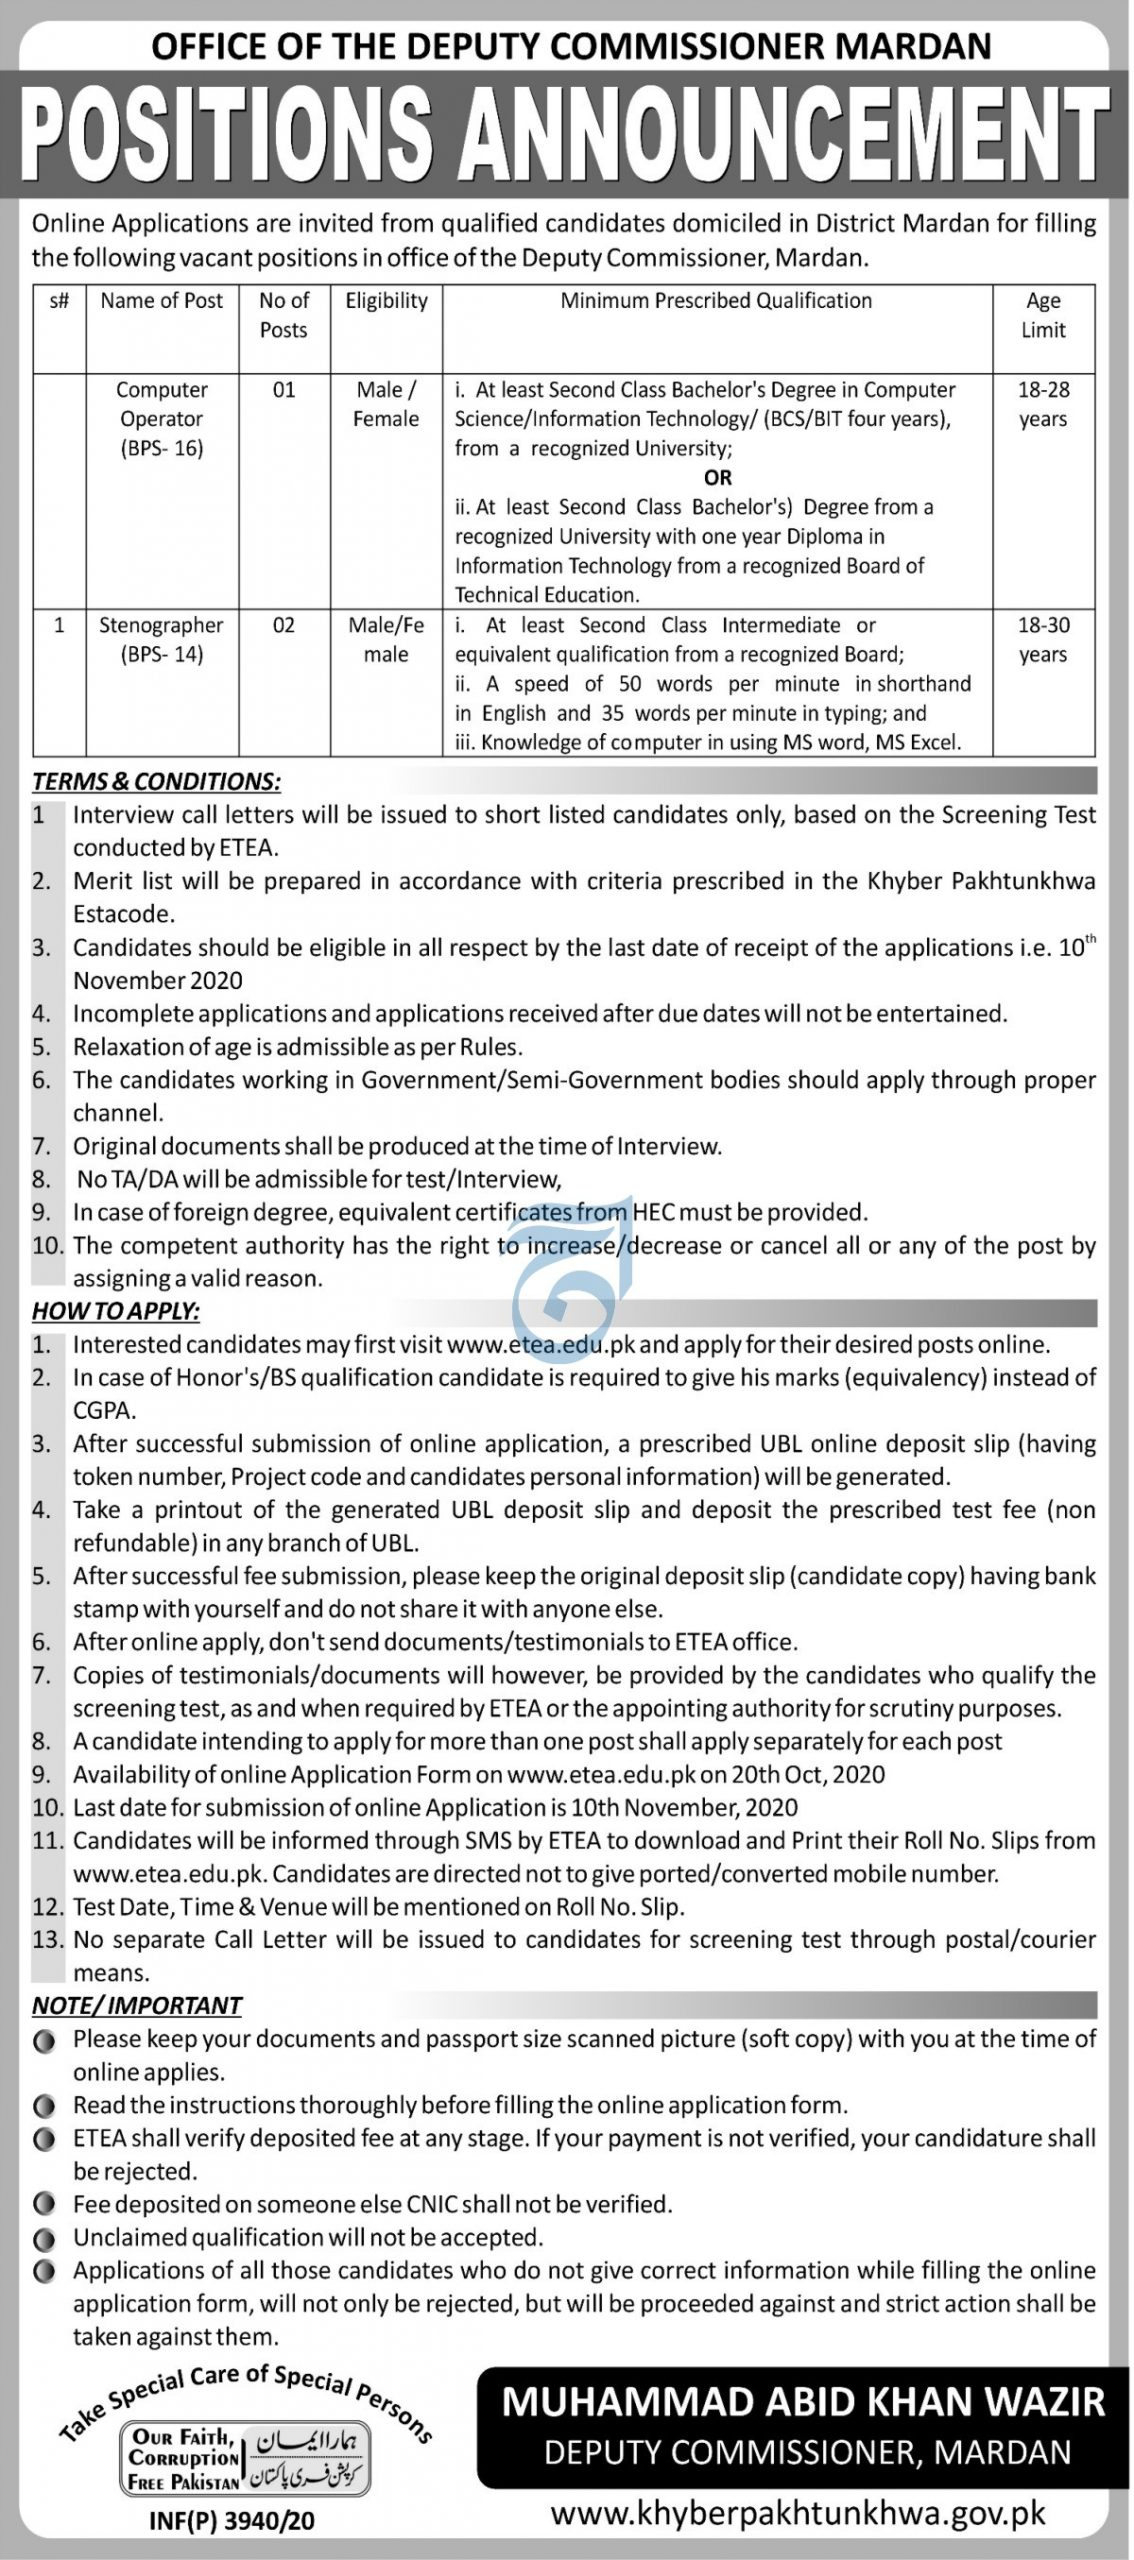 Deputy Commissioner Office Mardan Jobs ETEA Roll No Slip